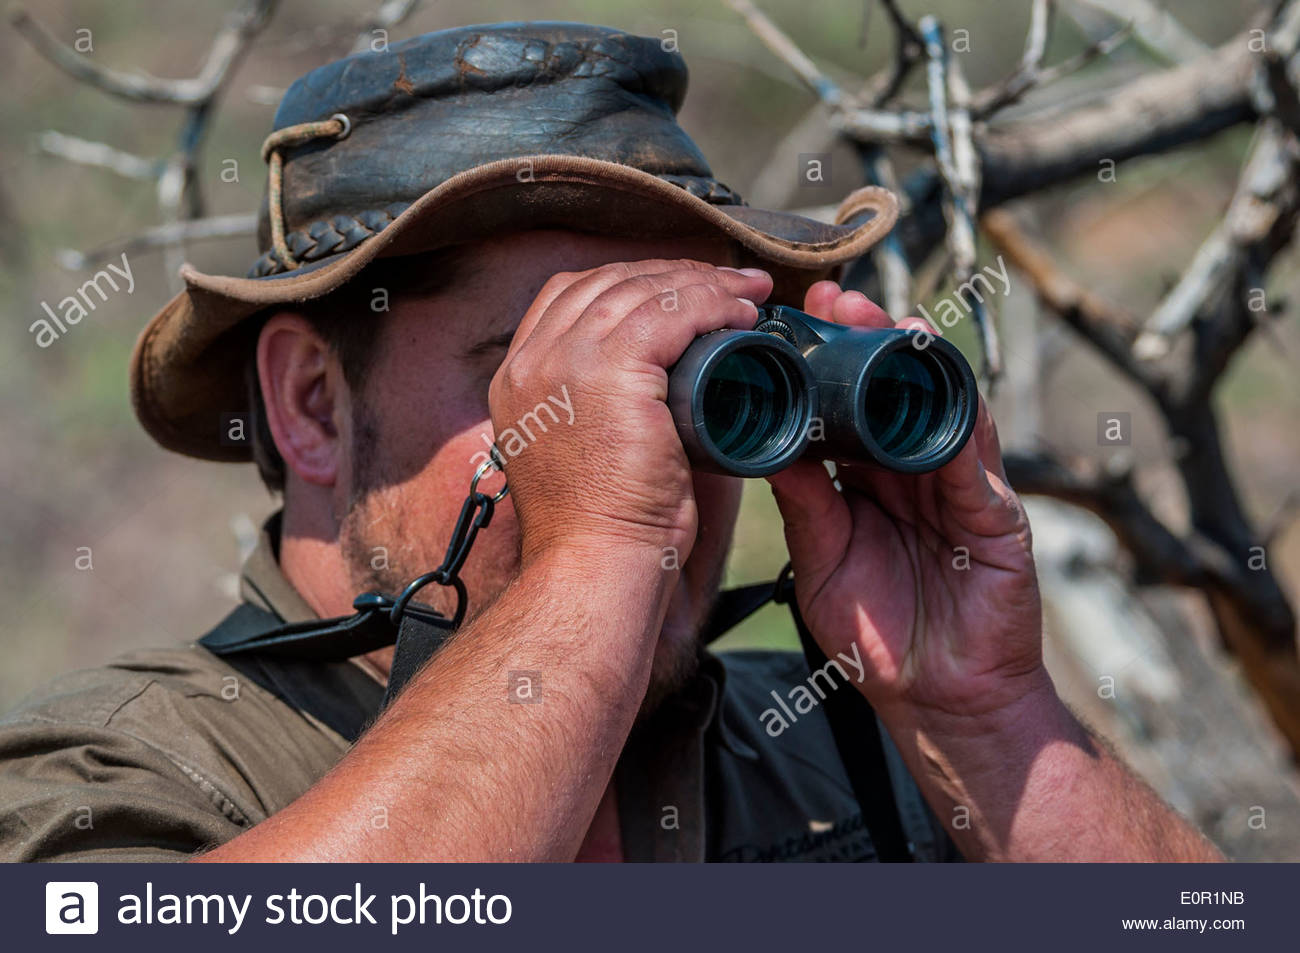 A hunter checking for wild animals through binoculars on a hunting farm in Namibia. - Stock Image